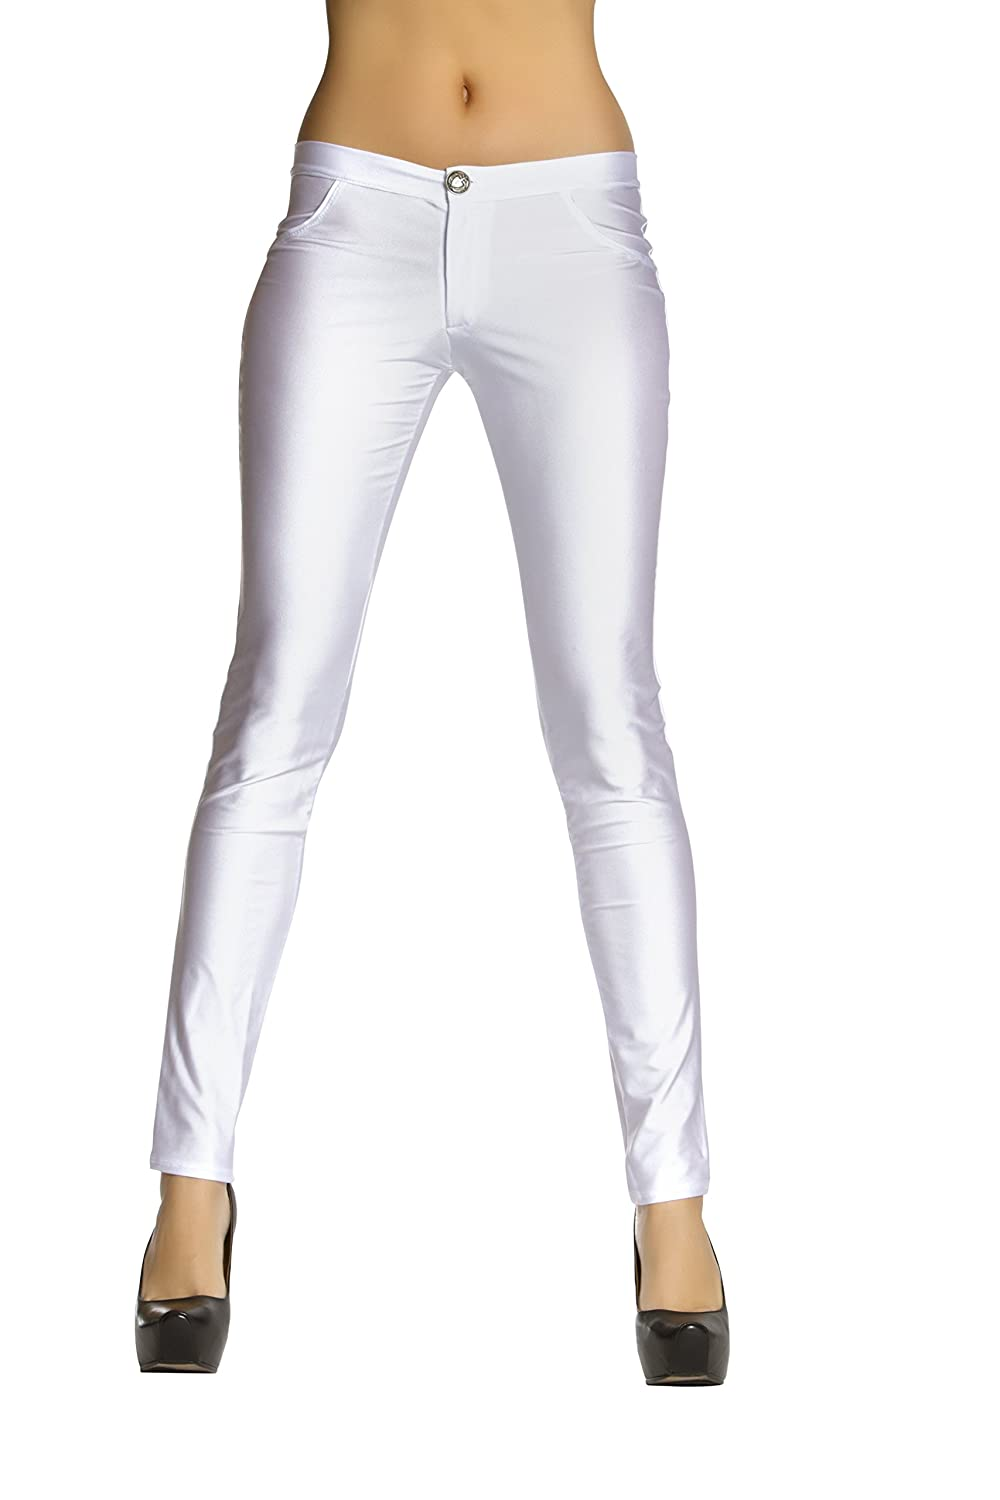 Roma Costume Button Front pants with Pocket Detail 3174